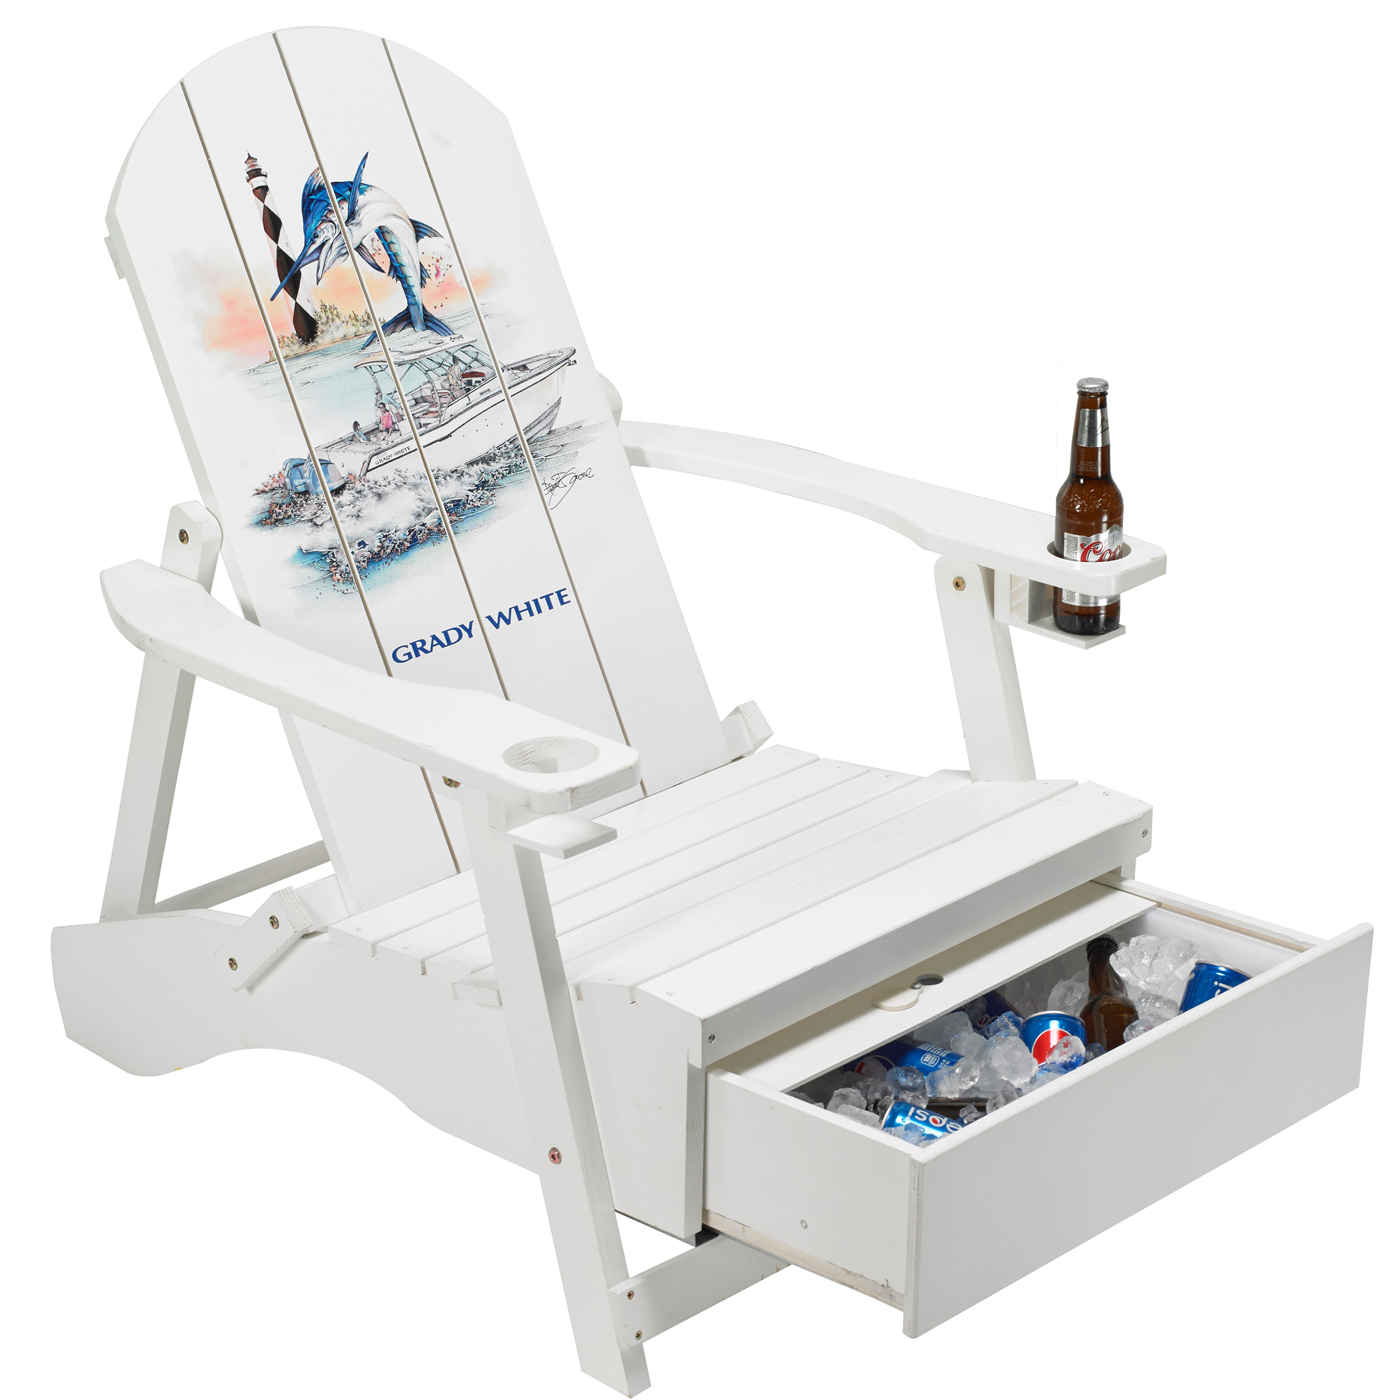 Summeressentials Custom Adirondack Chairs Captiv8 Promotions